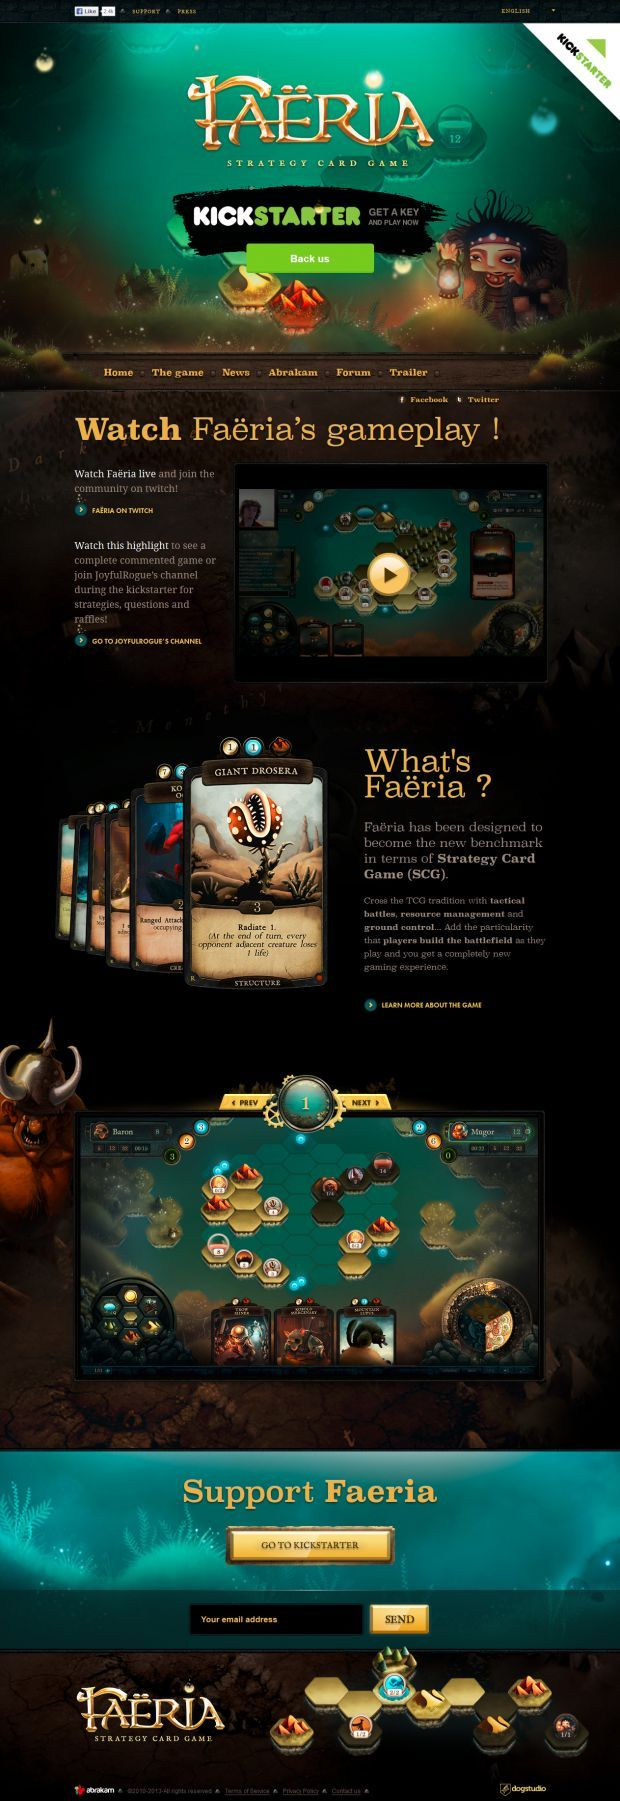 Faeria. The bemchmark of strategy card game. #webdesign #design